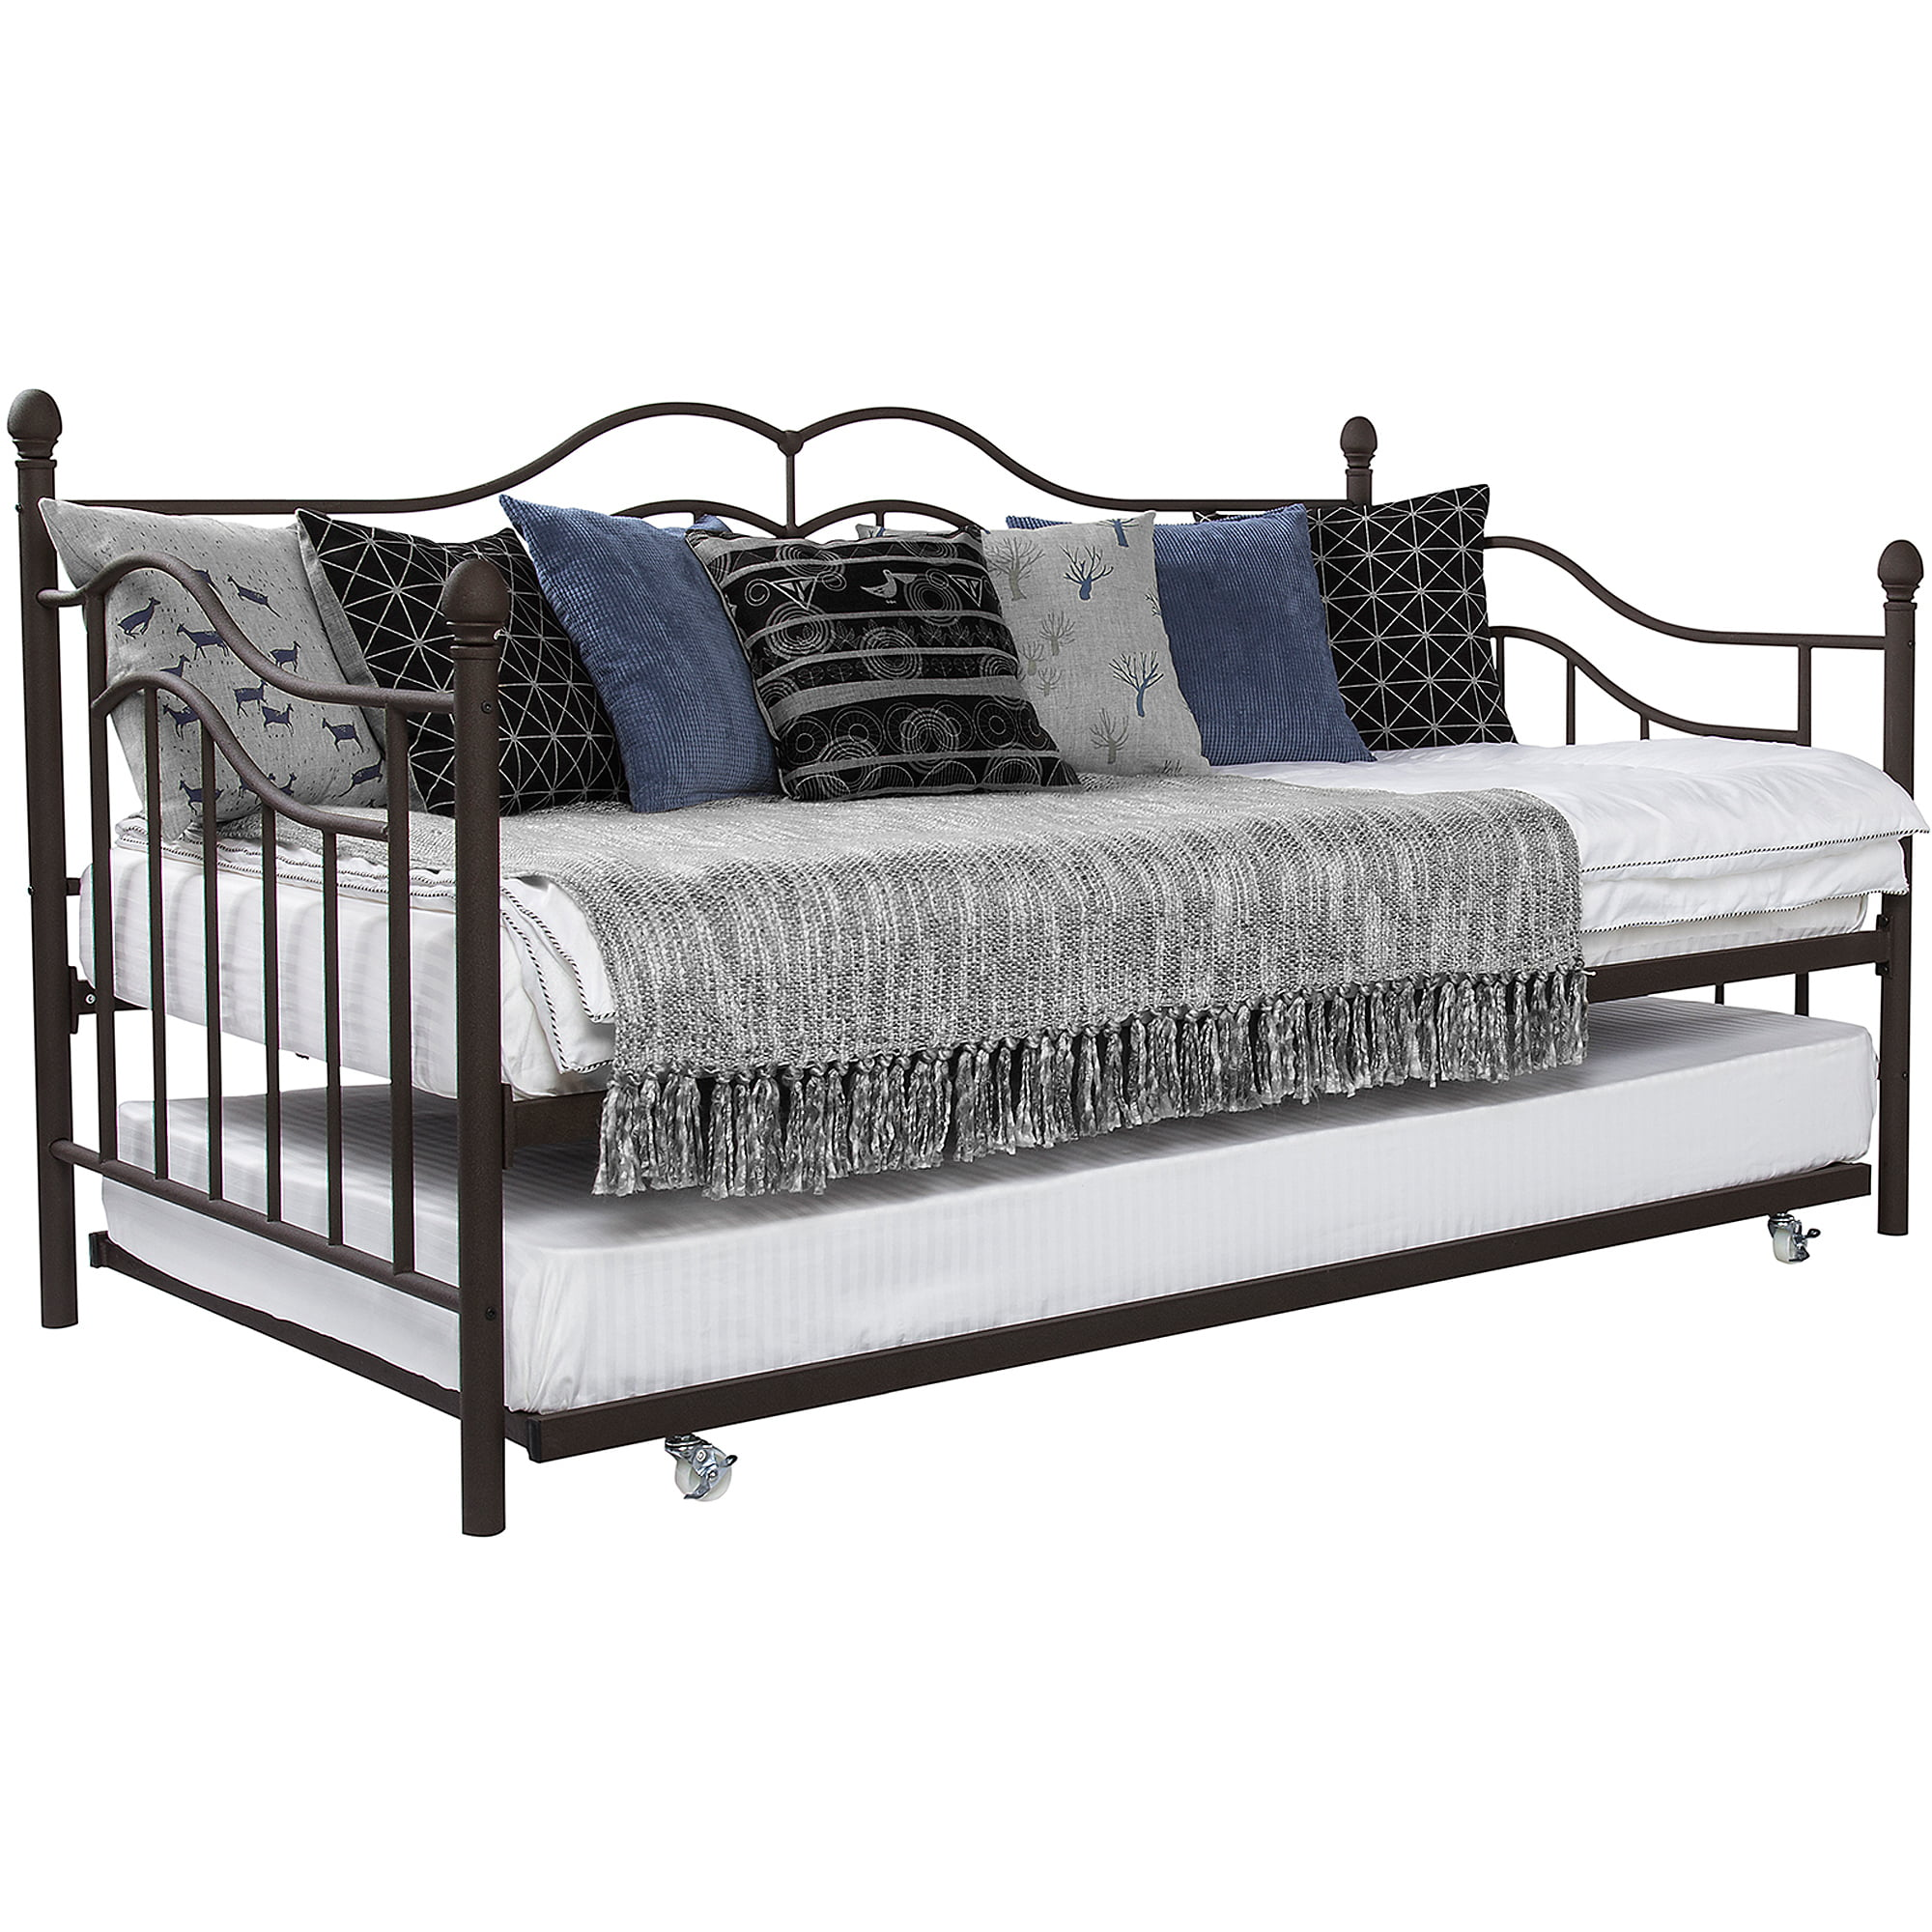 Adult daybed twin bed frame with trundle daybeds for for Beds with trundle